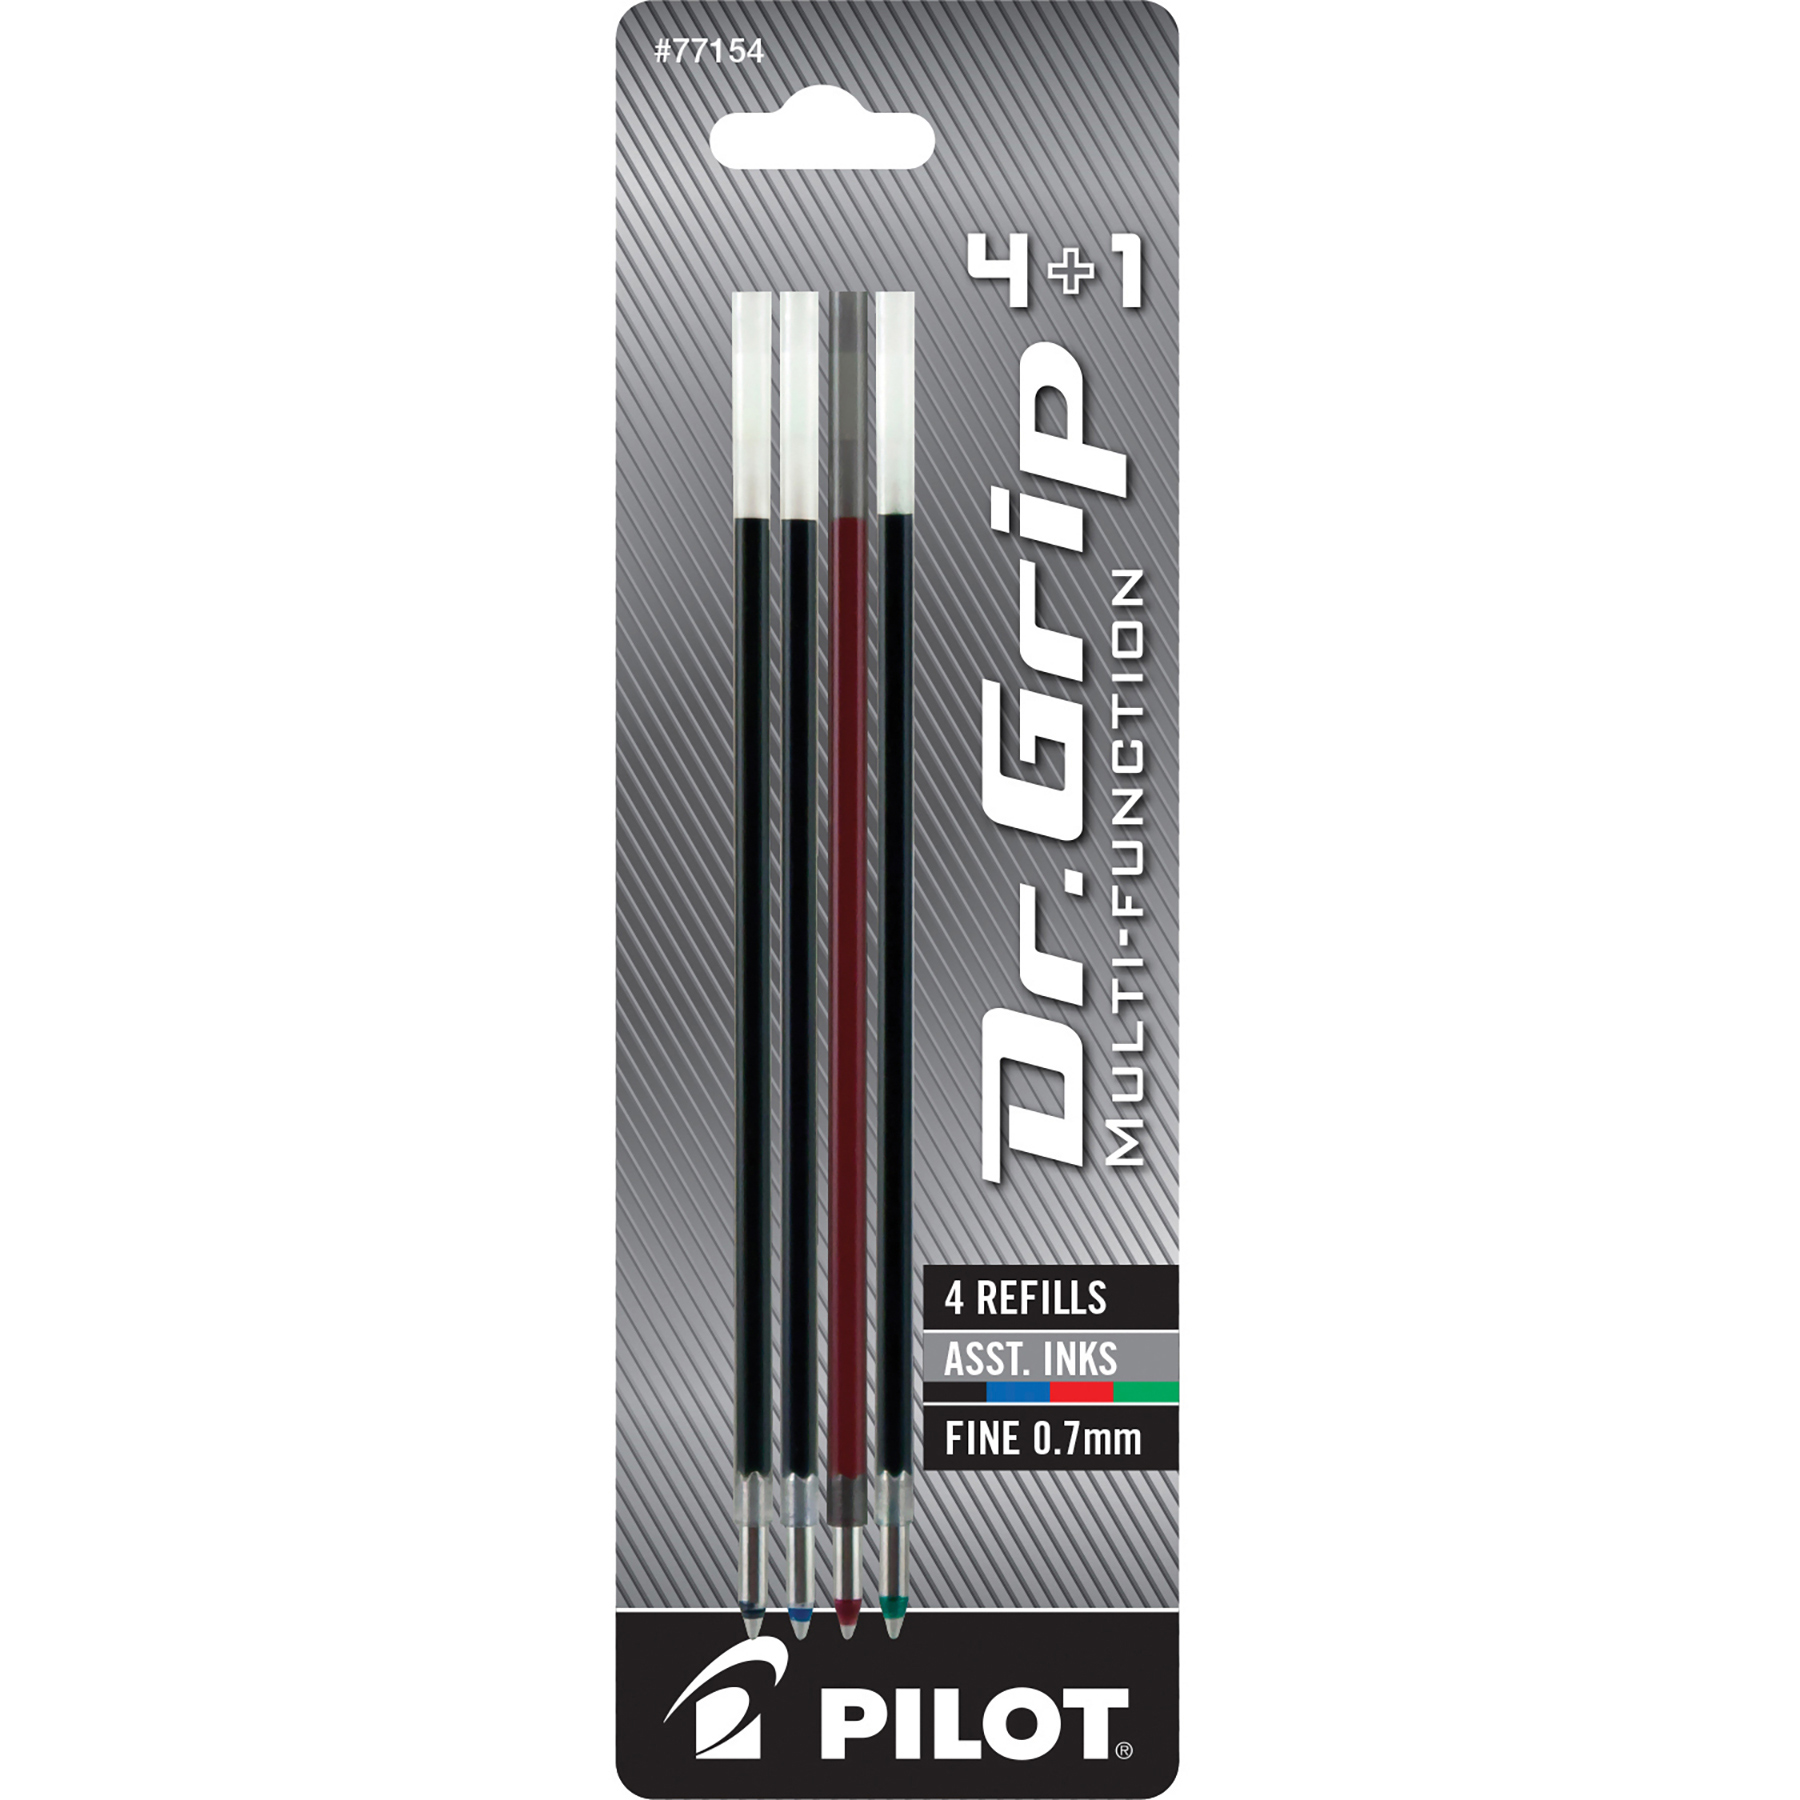 Pilot Dr Grip 4+1 Multi-Function Ink Refills